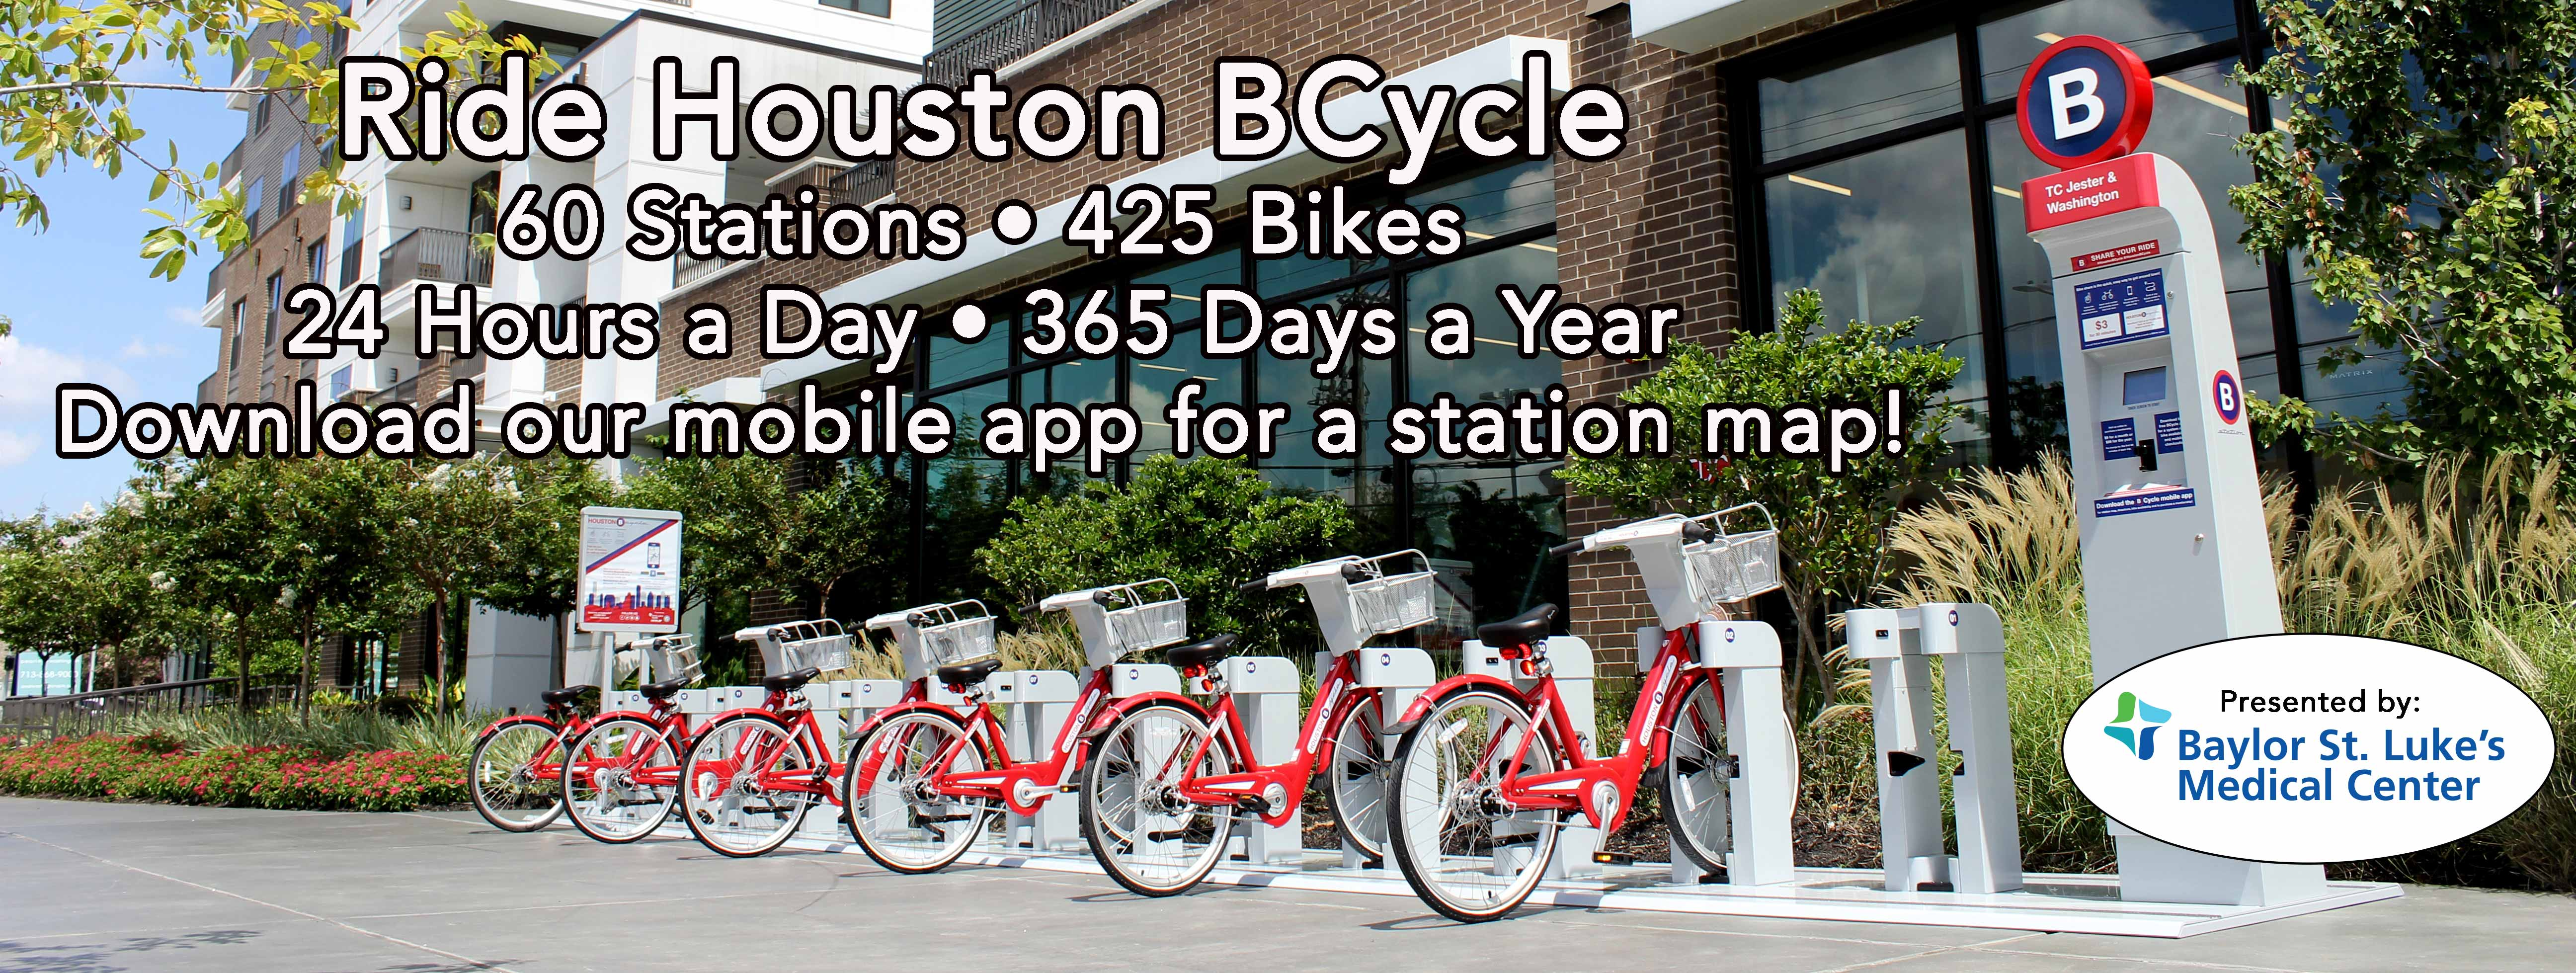 Houston BCycle is a bike share program